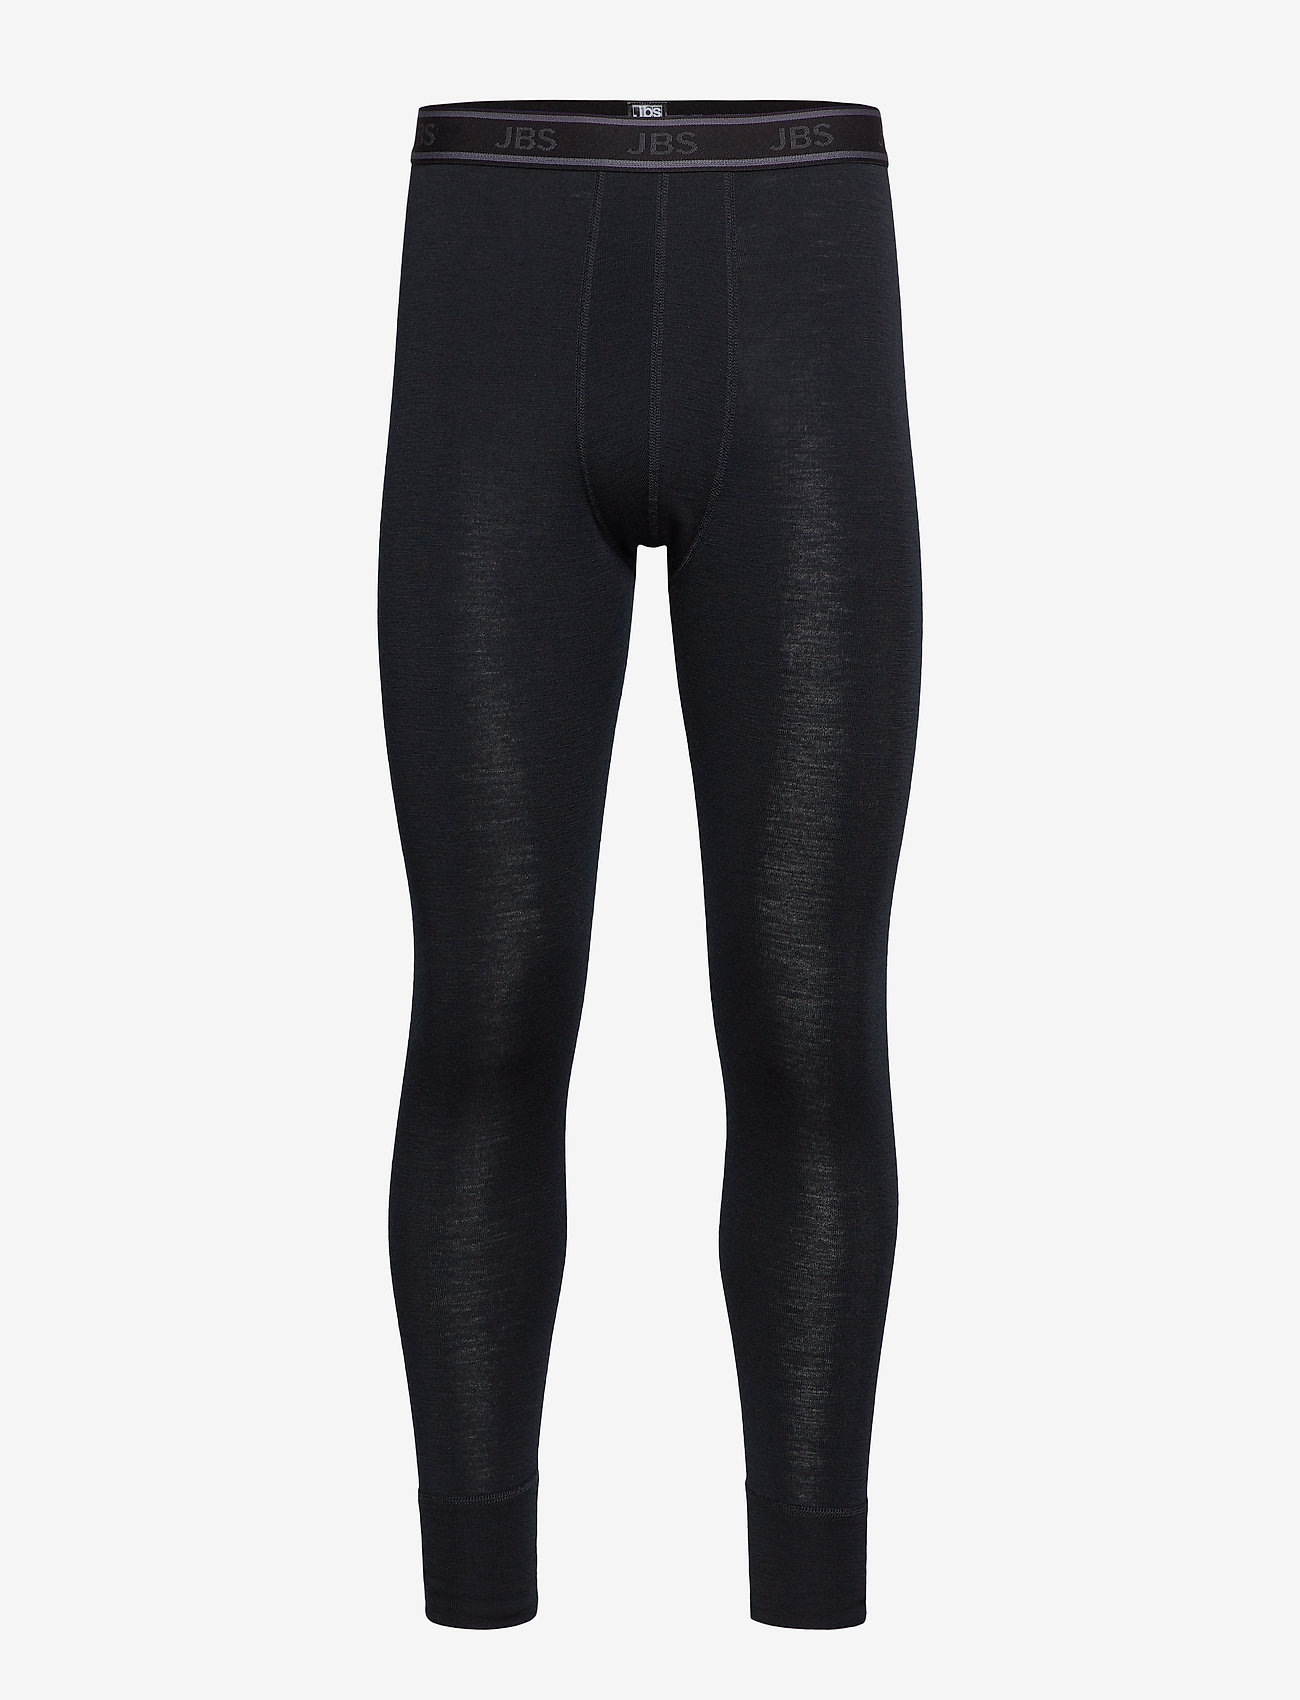 JBS - JBS, long johns - long johns - black - 0